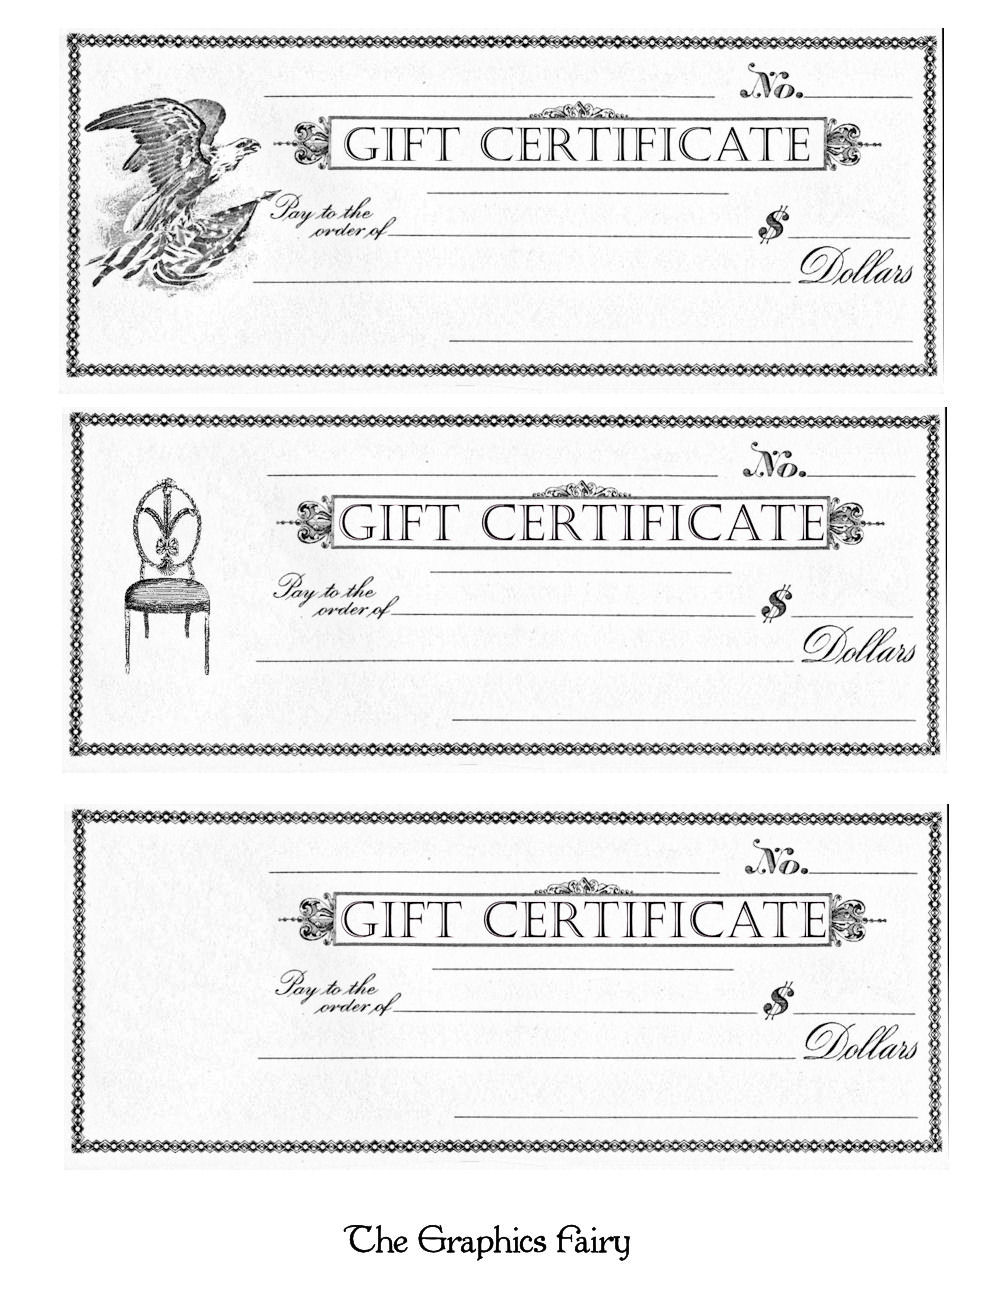 The Graphics Fairy  Create Gift Certificate Online Free